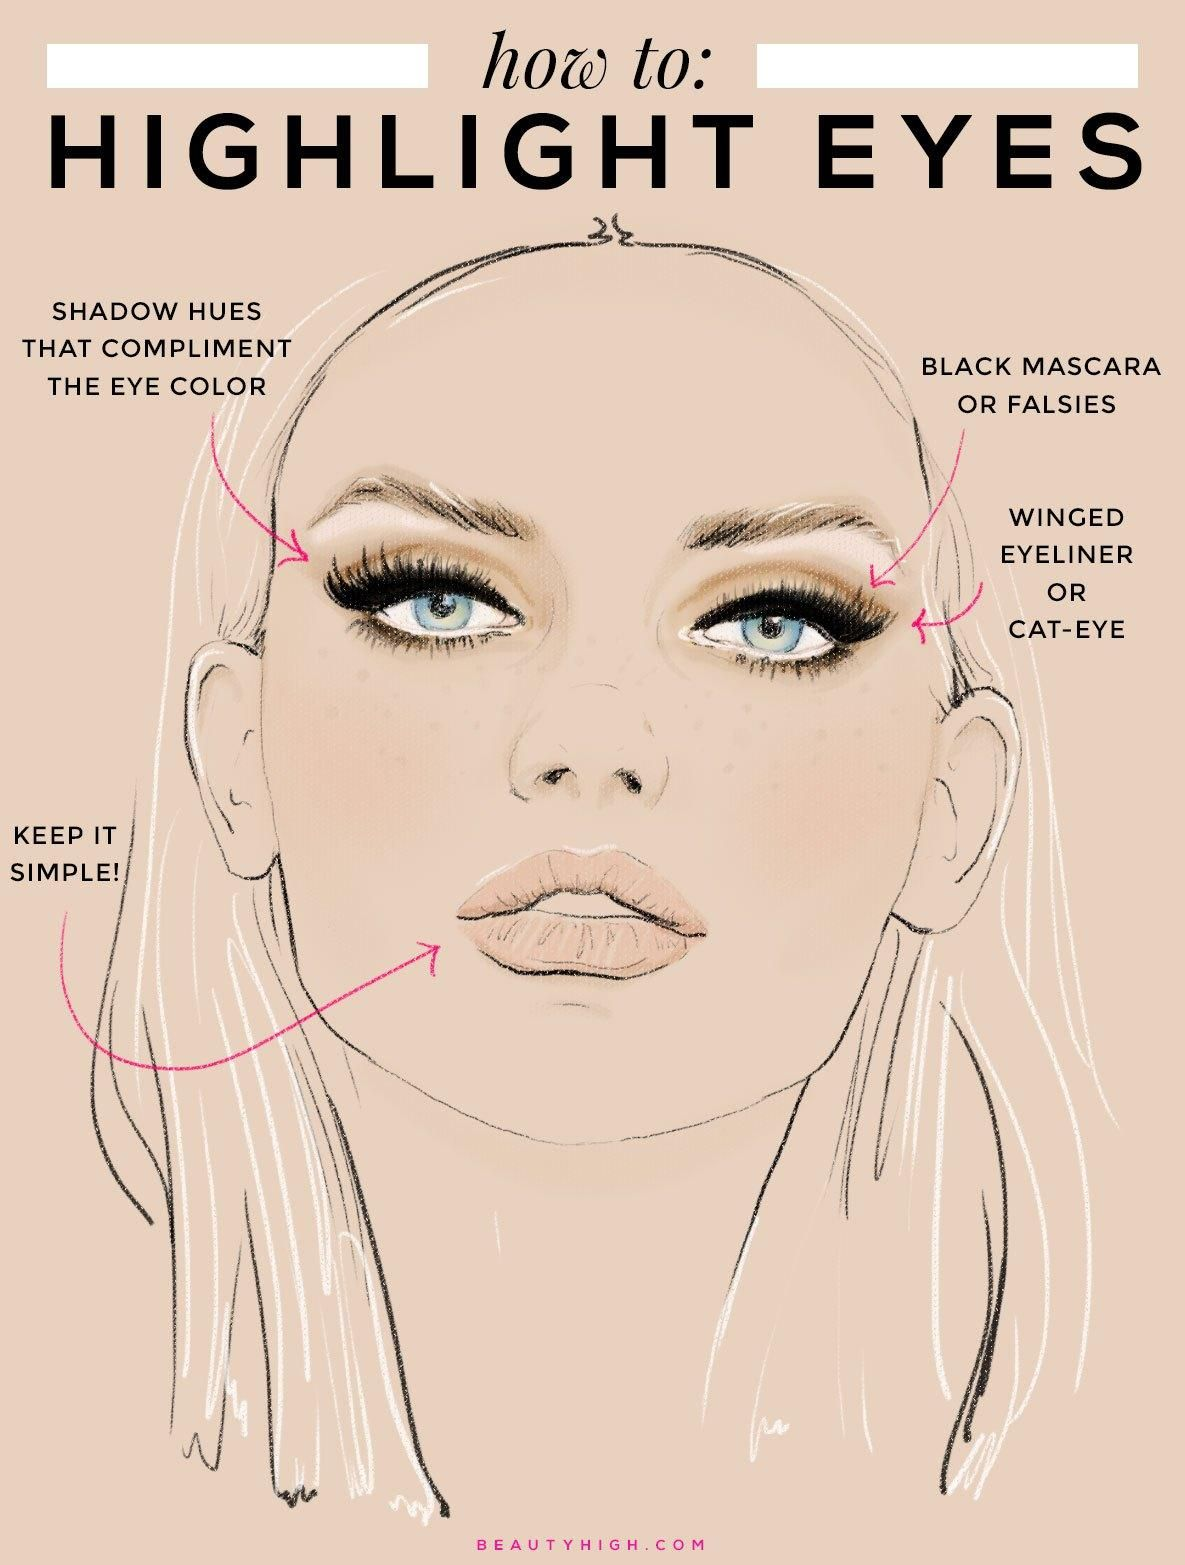 Prom Makeup Tips to Highlight Your FacialFeatures